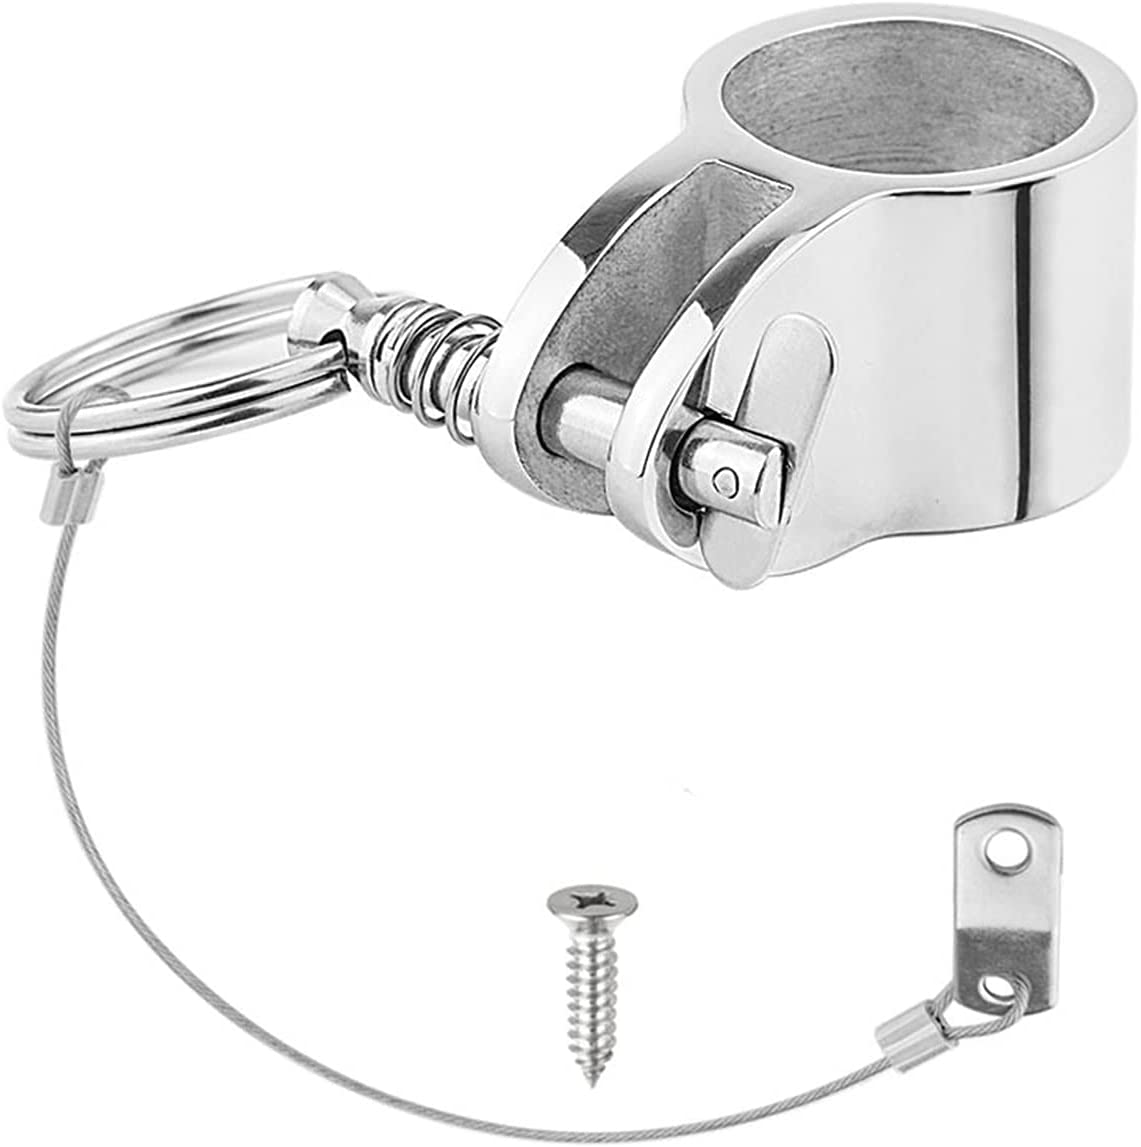 TUOL1AO XUHAOD overseas Stainless Steel 316 Jaw Clamp Slide with Quick safety Re